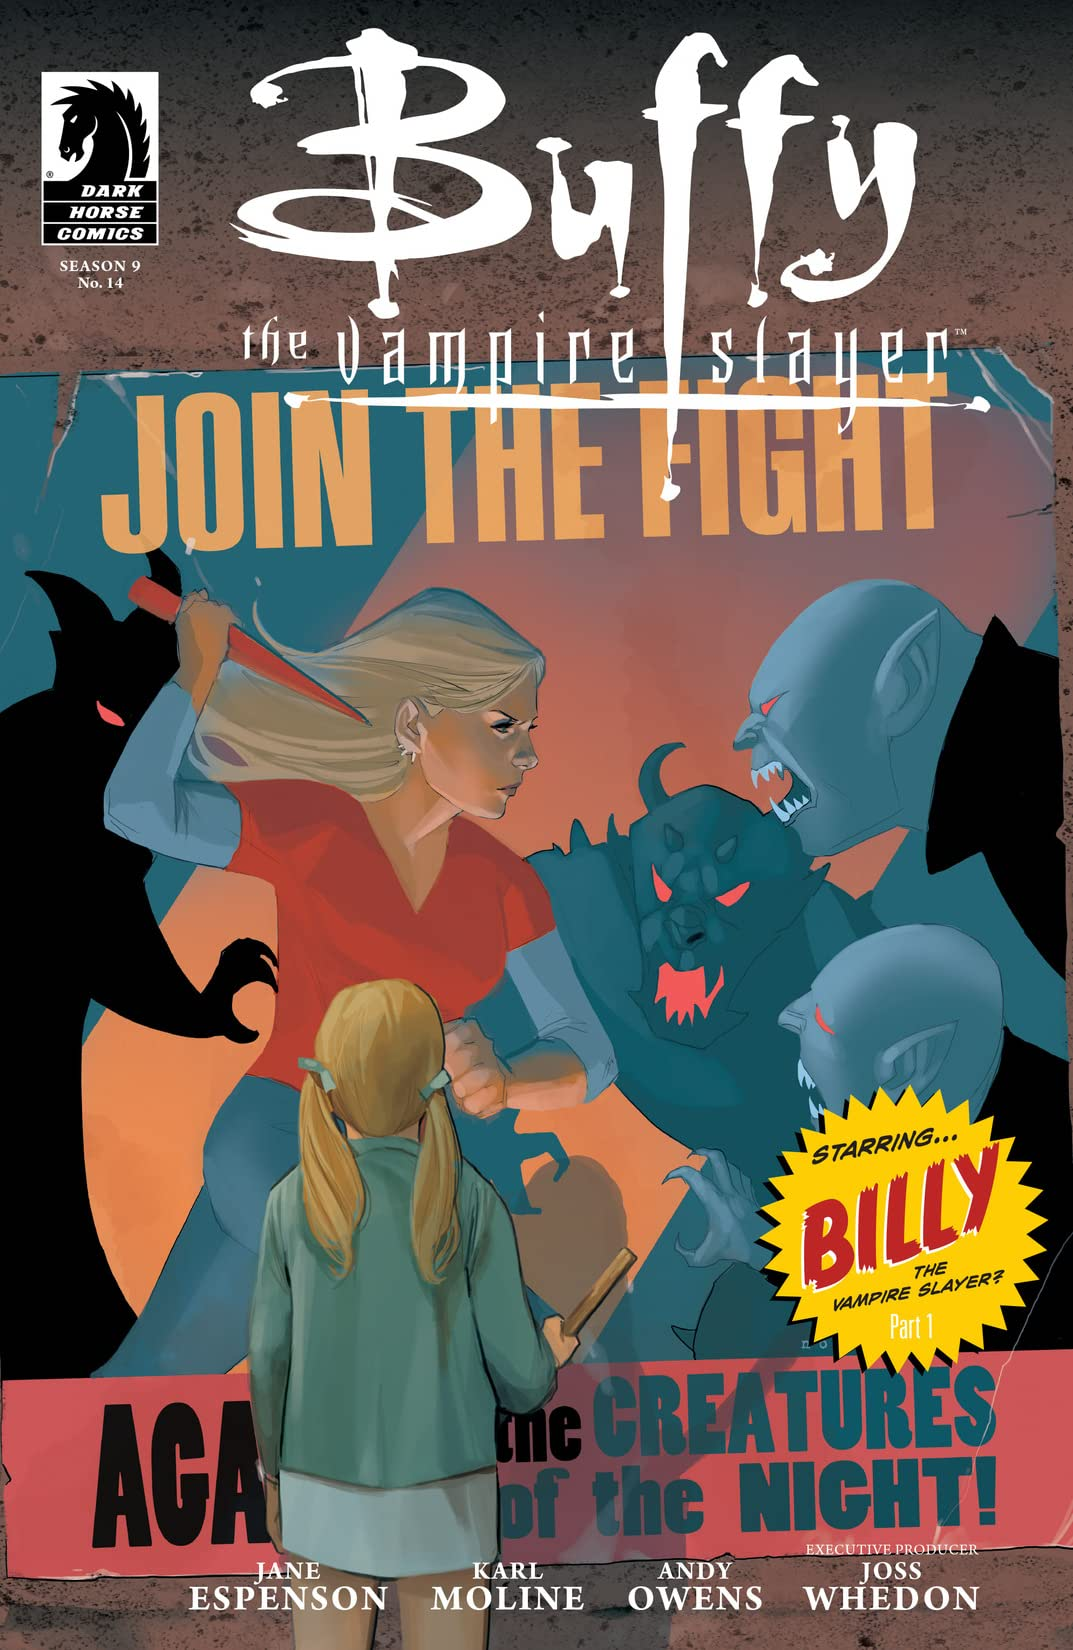 Buffy the Vampire Slayer: Season 9 #14